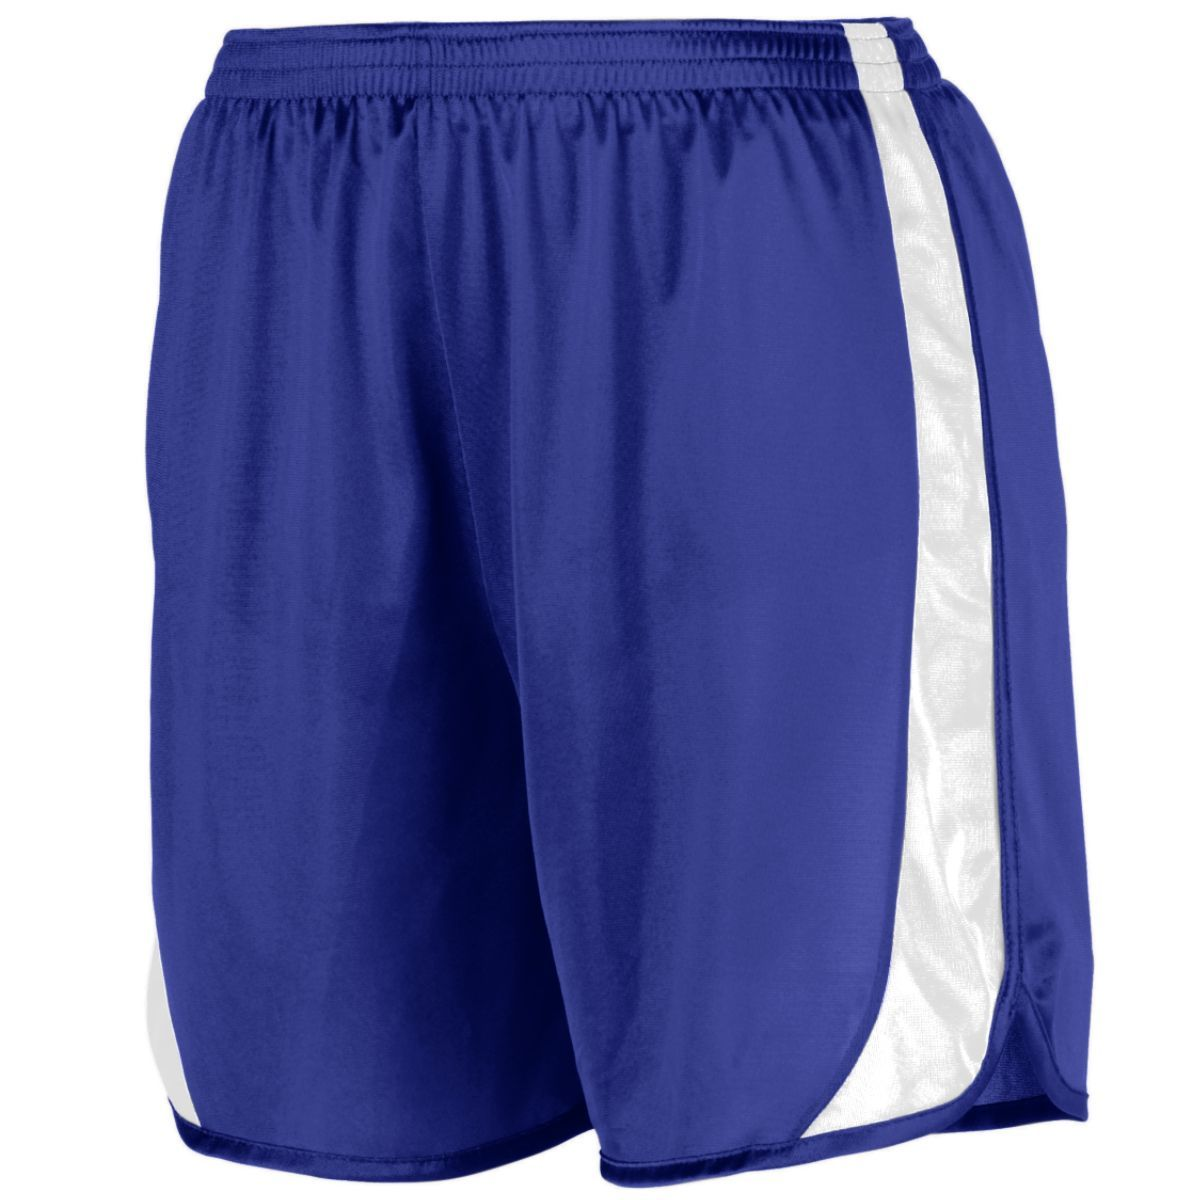 Youth Wicking Track Shorts With Side Insert - PURPLE/WHITE